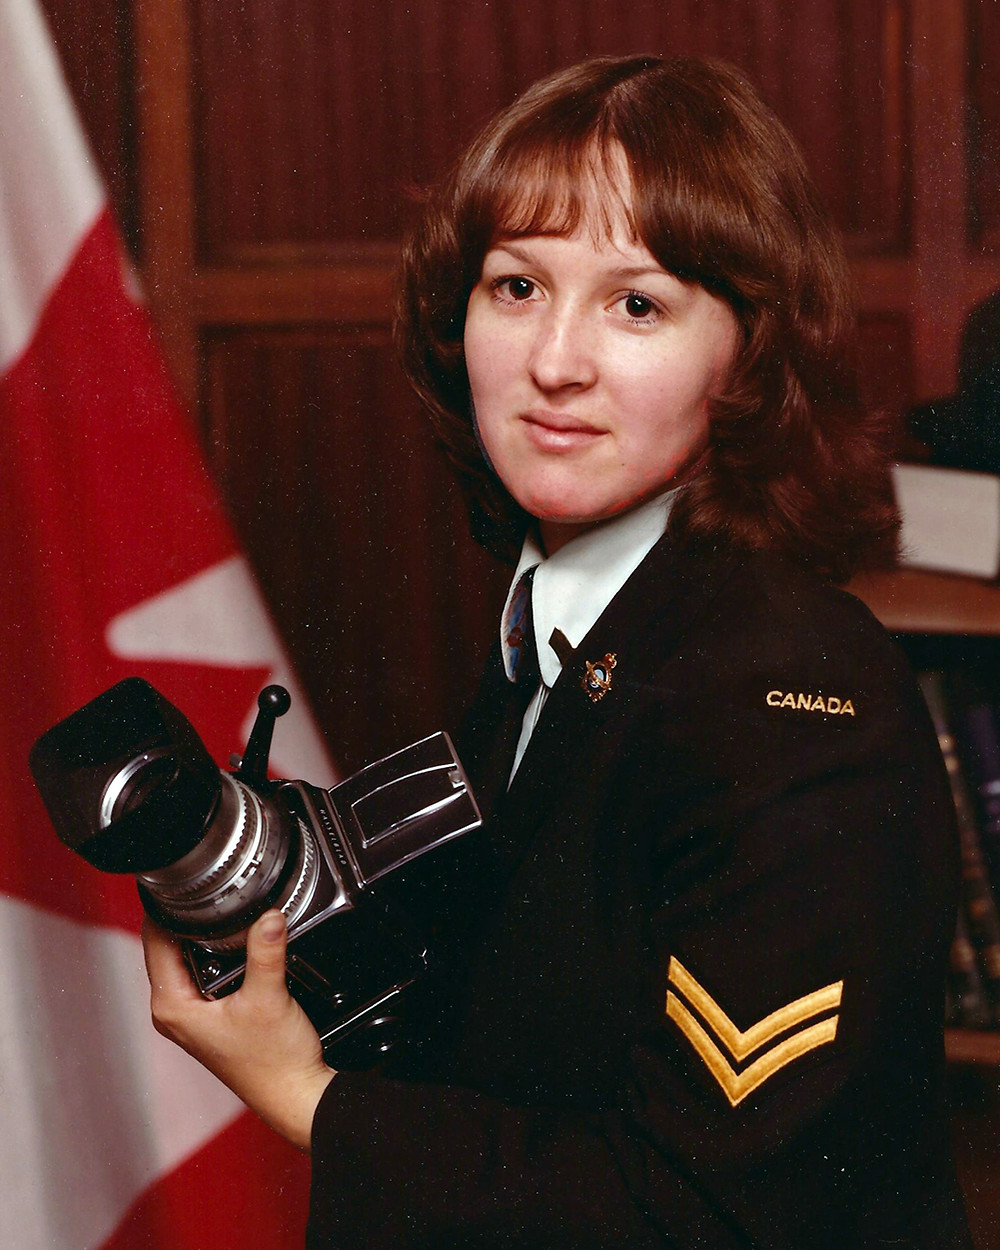 Corporal Wanda Beaudoin early on in her career as a Photographic Technician in the Canadian Armed Forces.